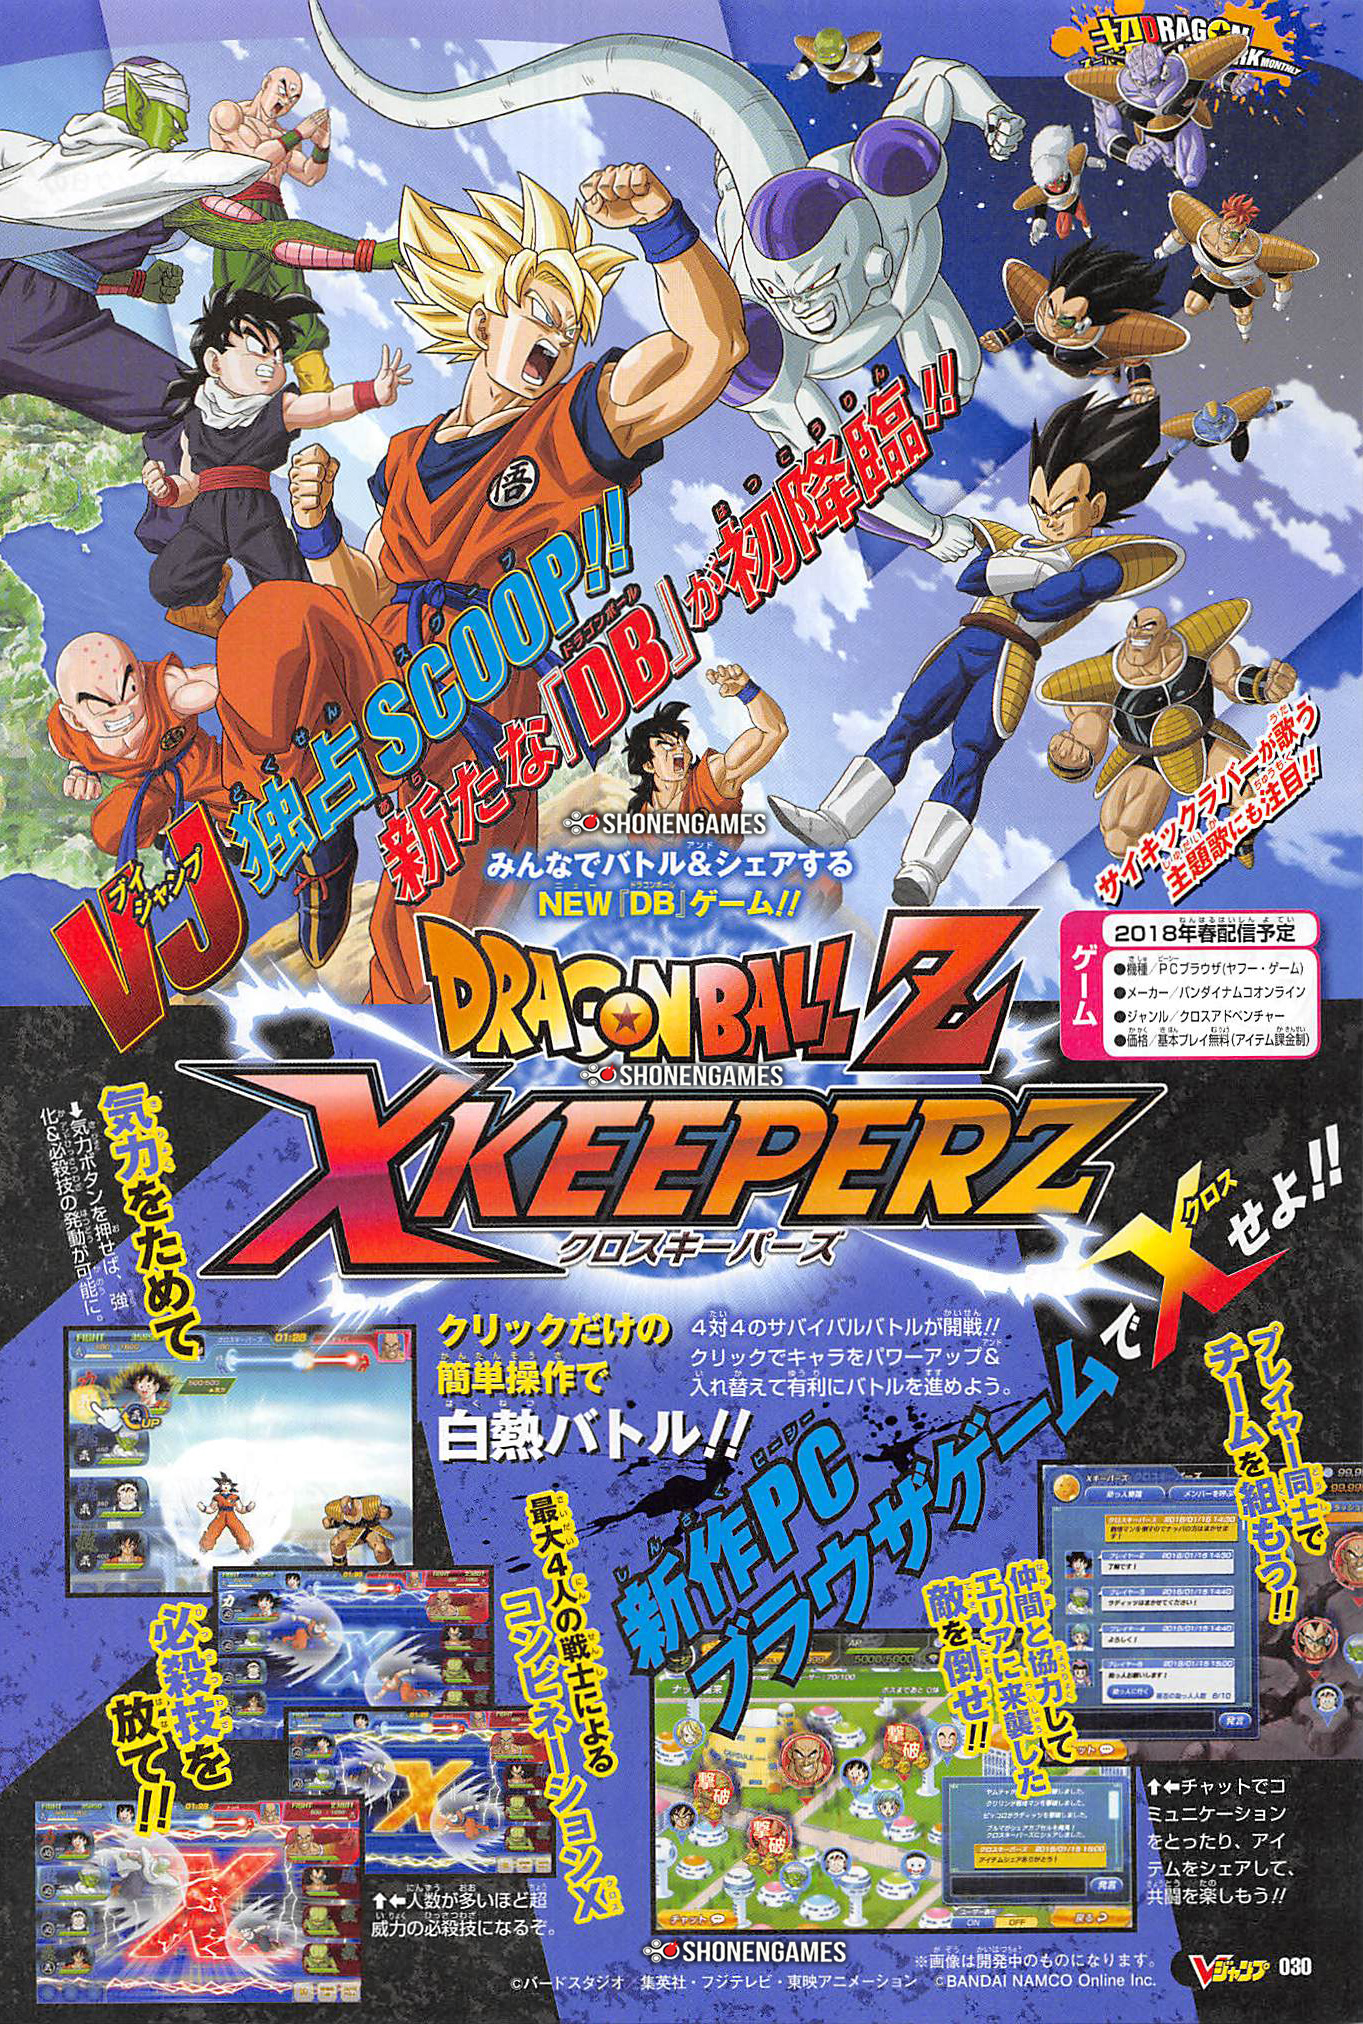 New Dragon Ball Z Game For Pc Announced